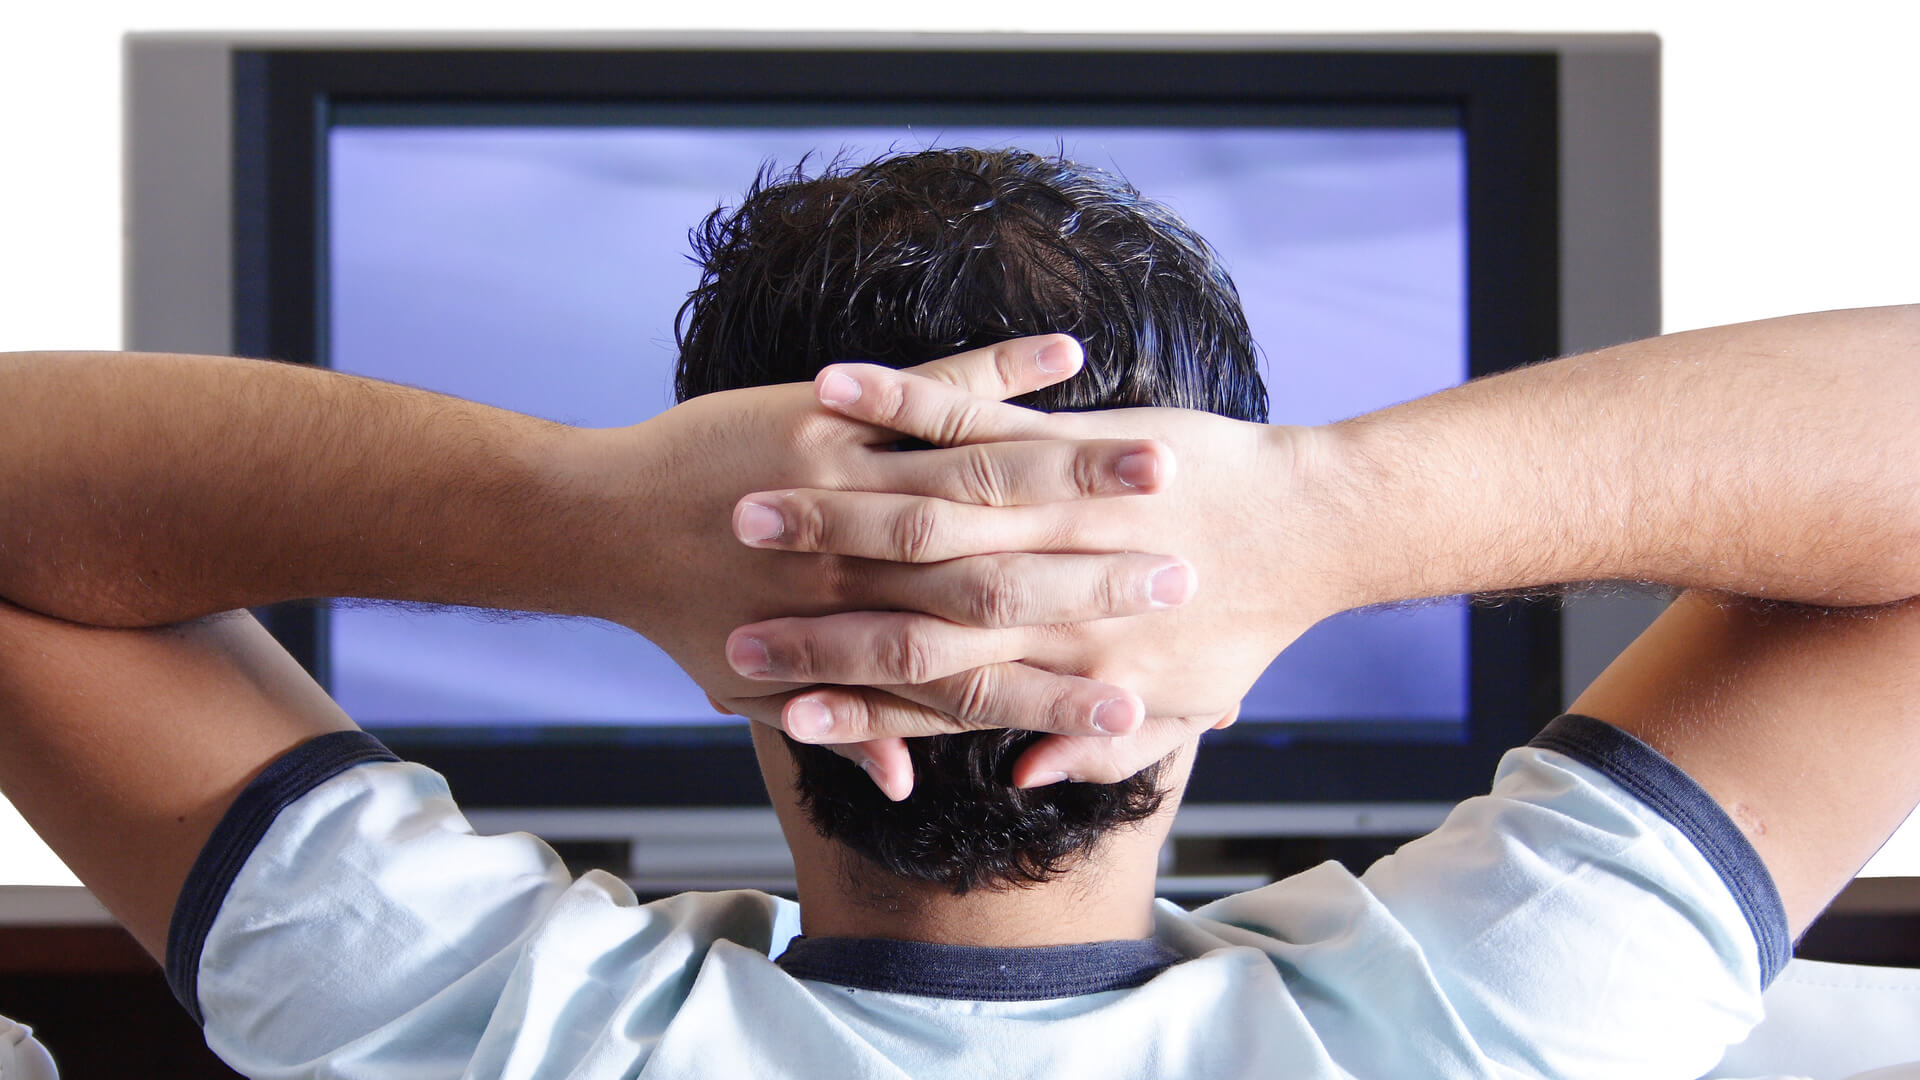 Adult sitting back with hands behind head, watching TV